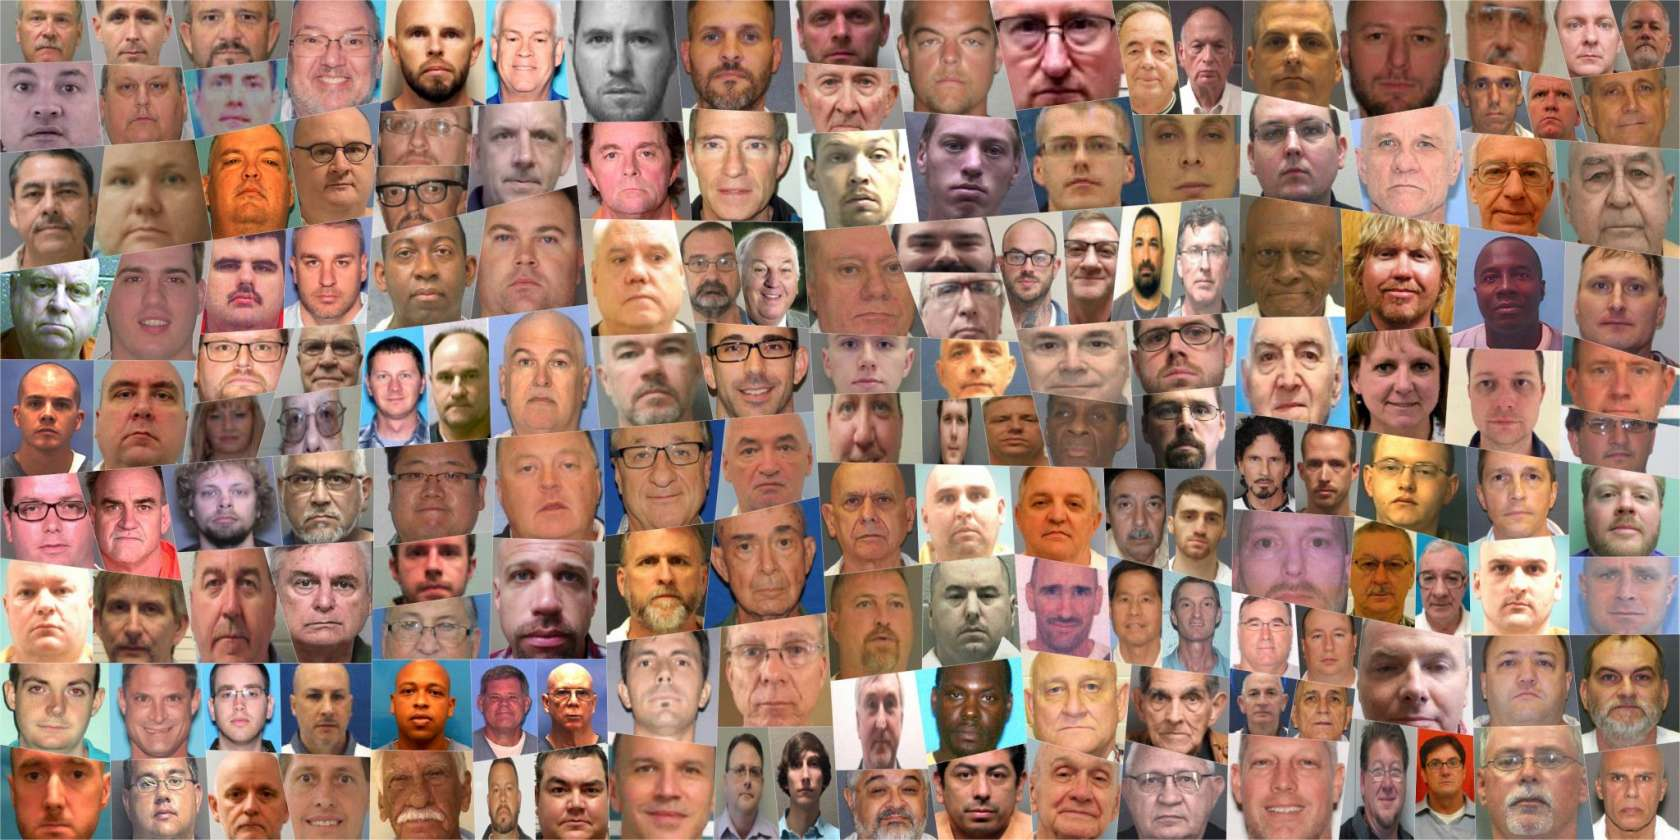 Southern Baptist leaders mug shots sexual abuse